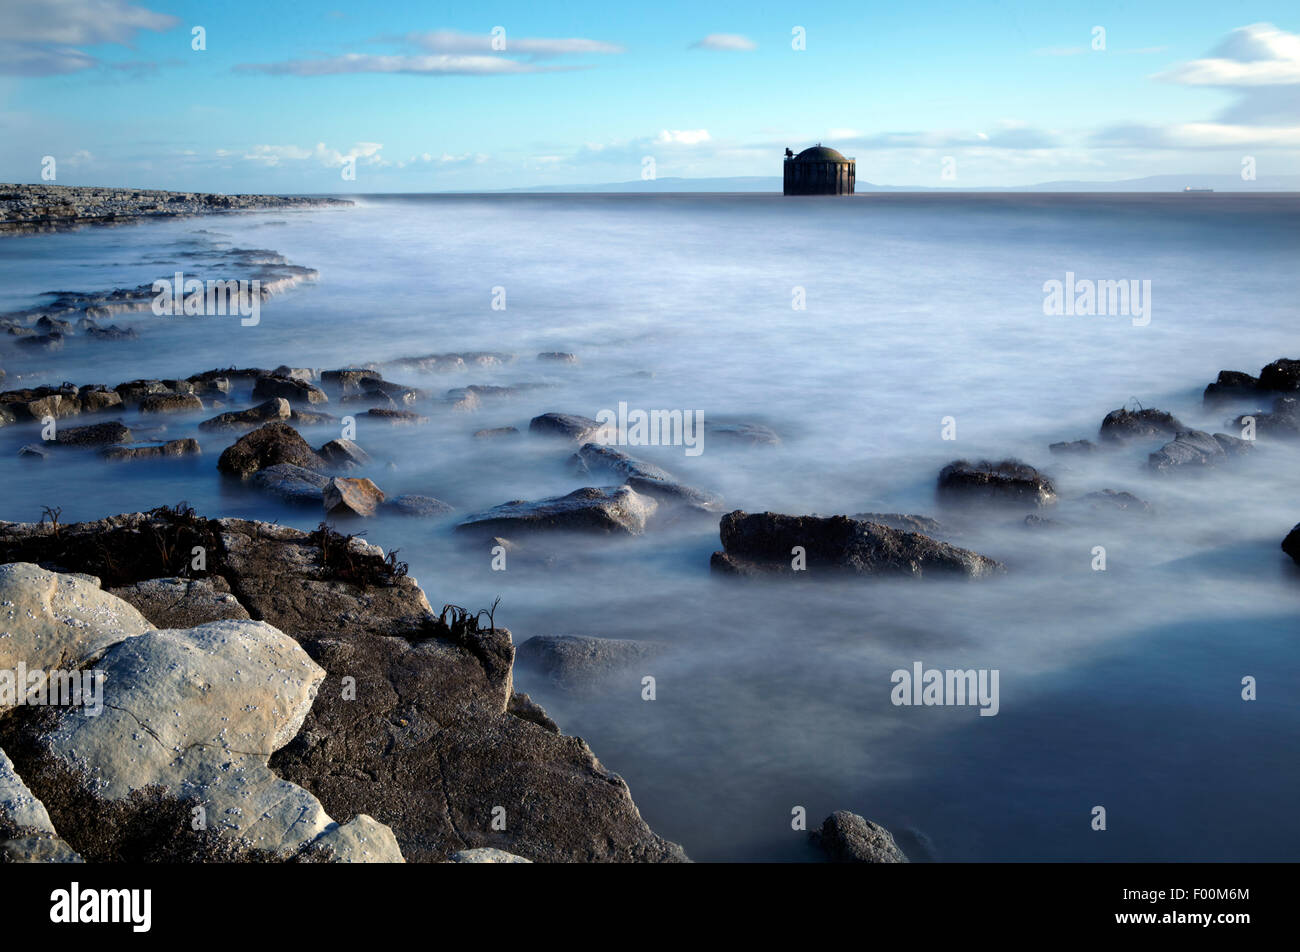 The cold water intake caisson in the Bristol Channel off Breaksea Point, for Aberthaw coal fired power station. - Stock Image